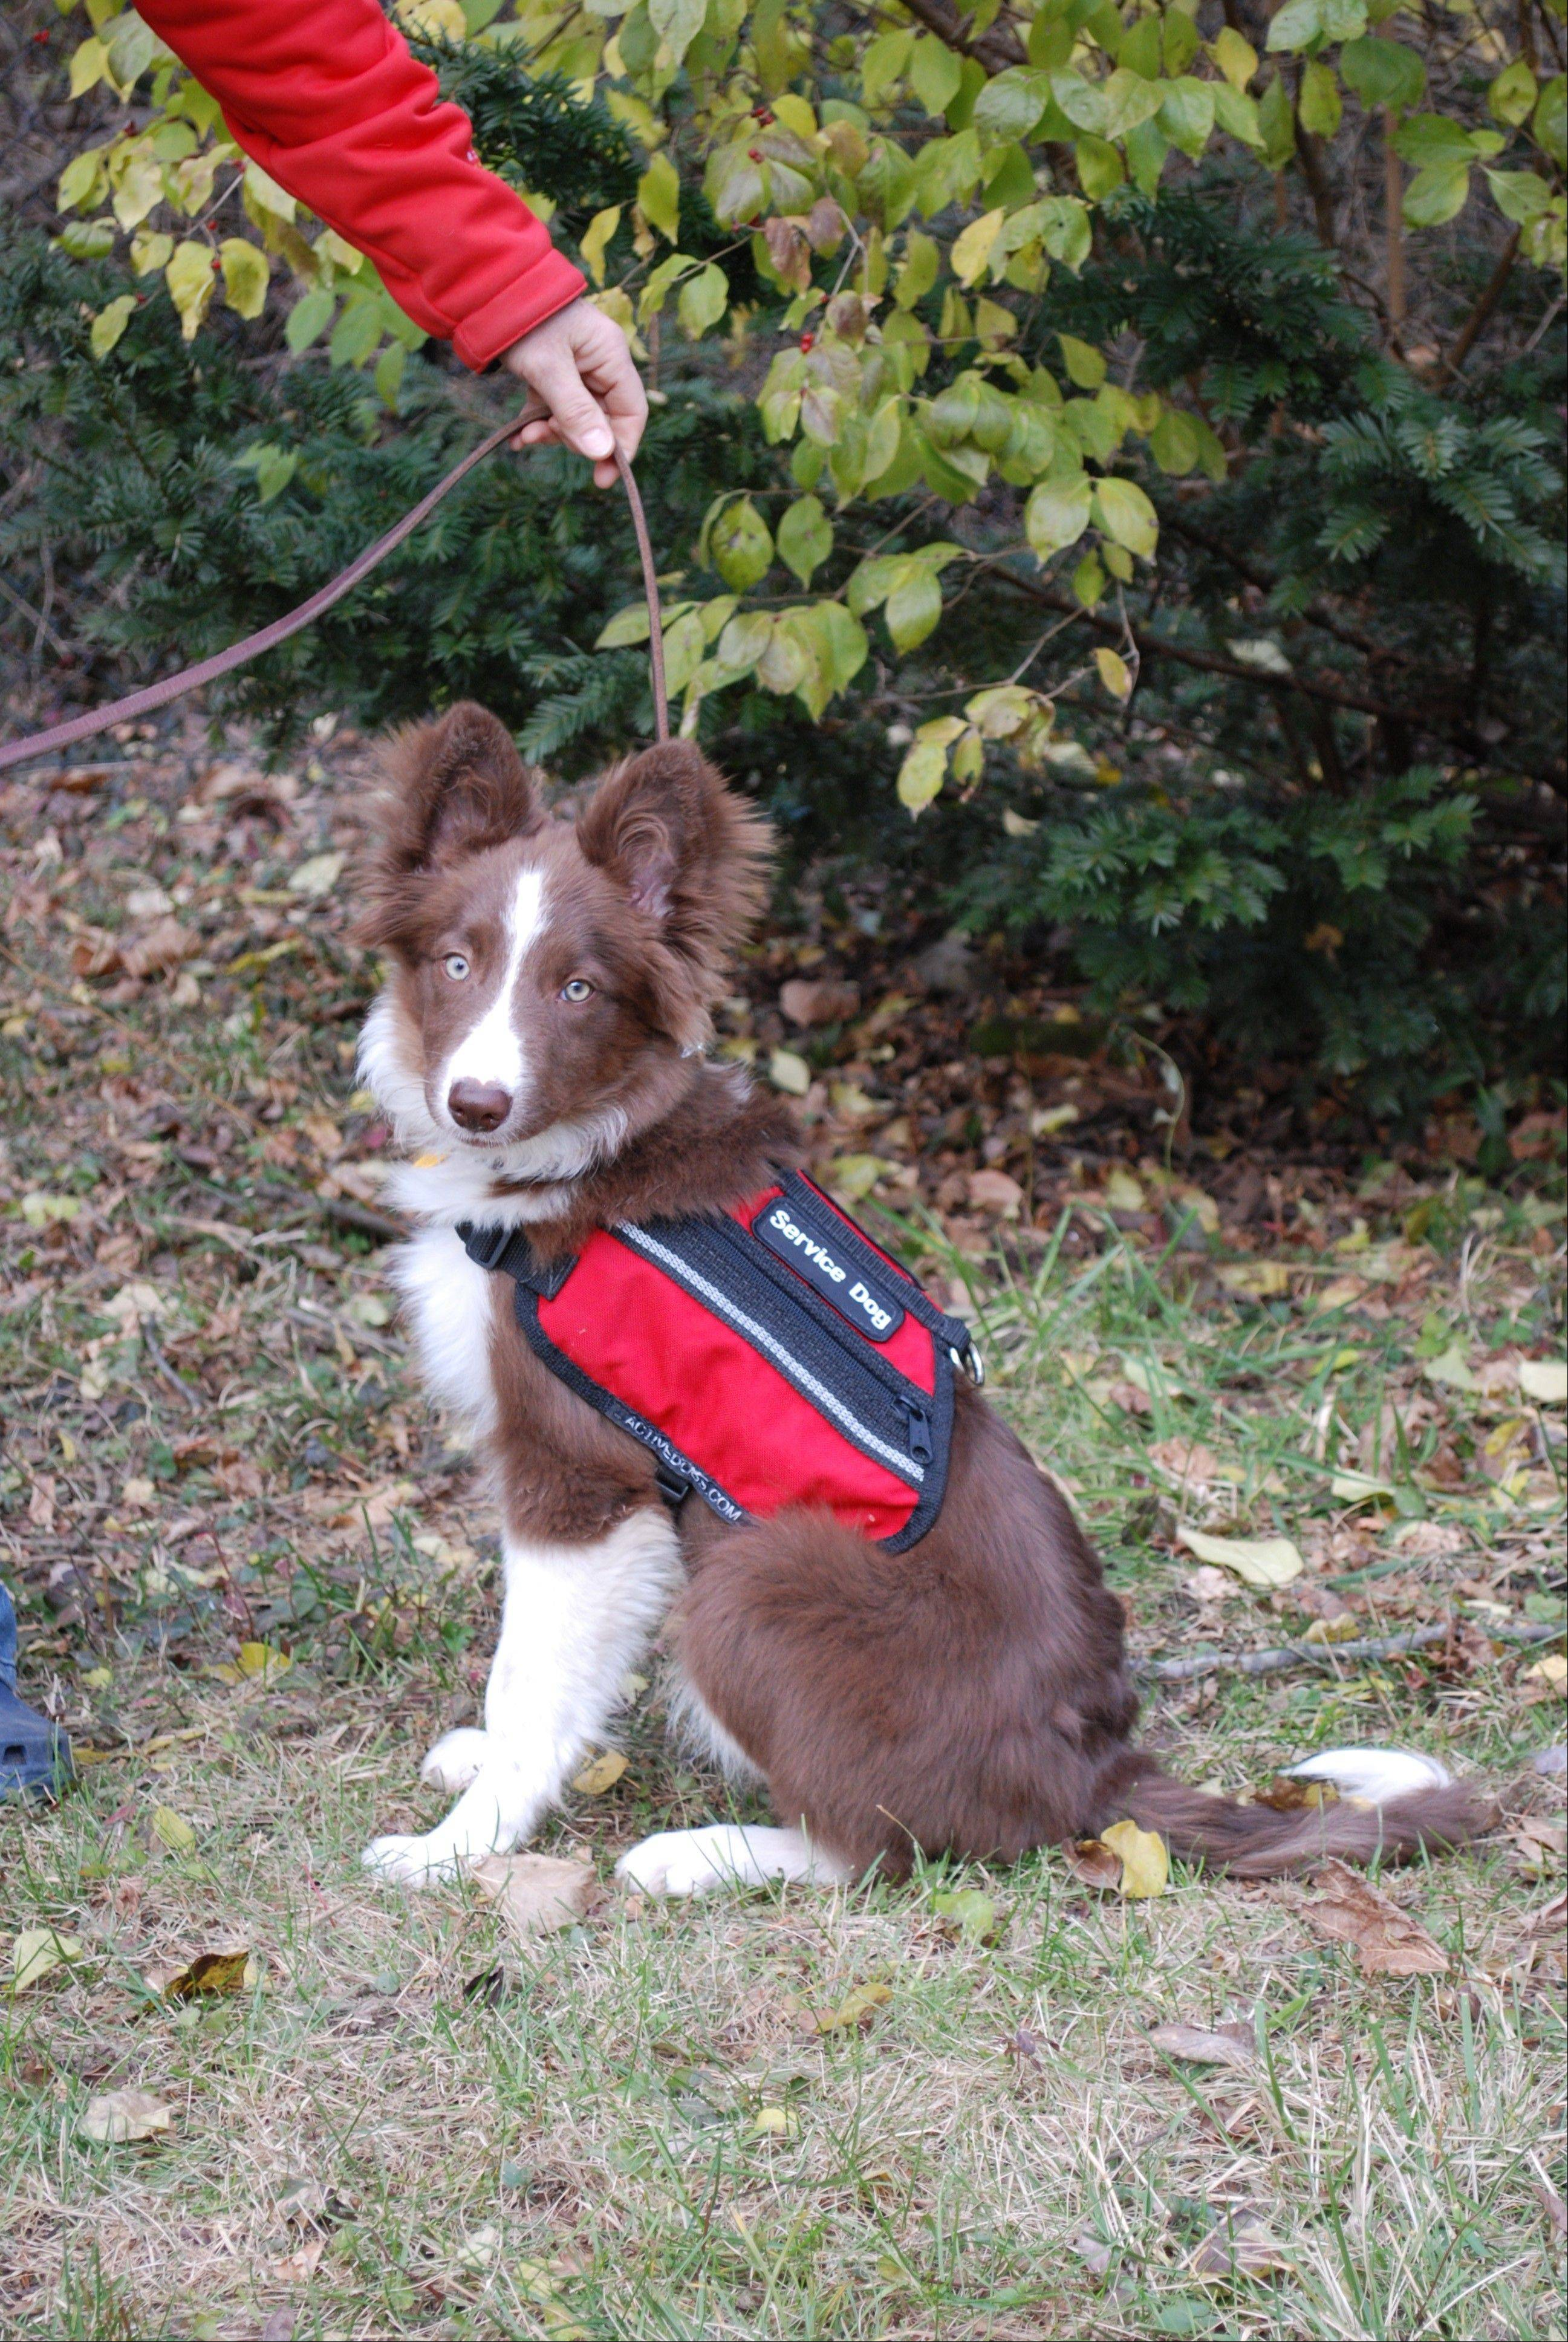 This 4�-month-old border collie named Razor is in training at Alert Service Dogs to become a diabetes-alert dog that can warn patients of serious changes in blood-sugar levels. One of these dogs will be auctioned off Saturday at the JDRF fundraiser in Chicago.